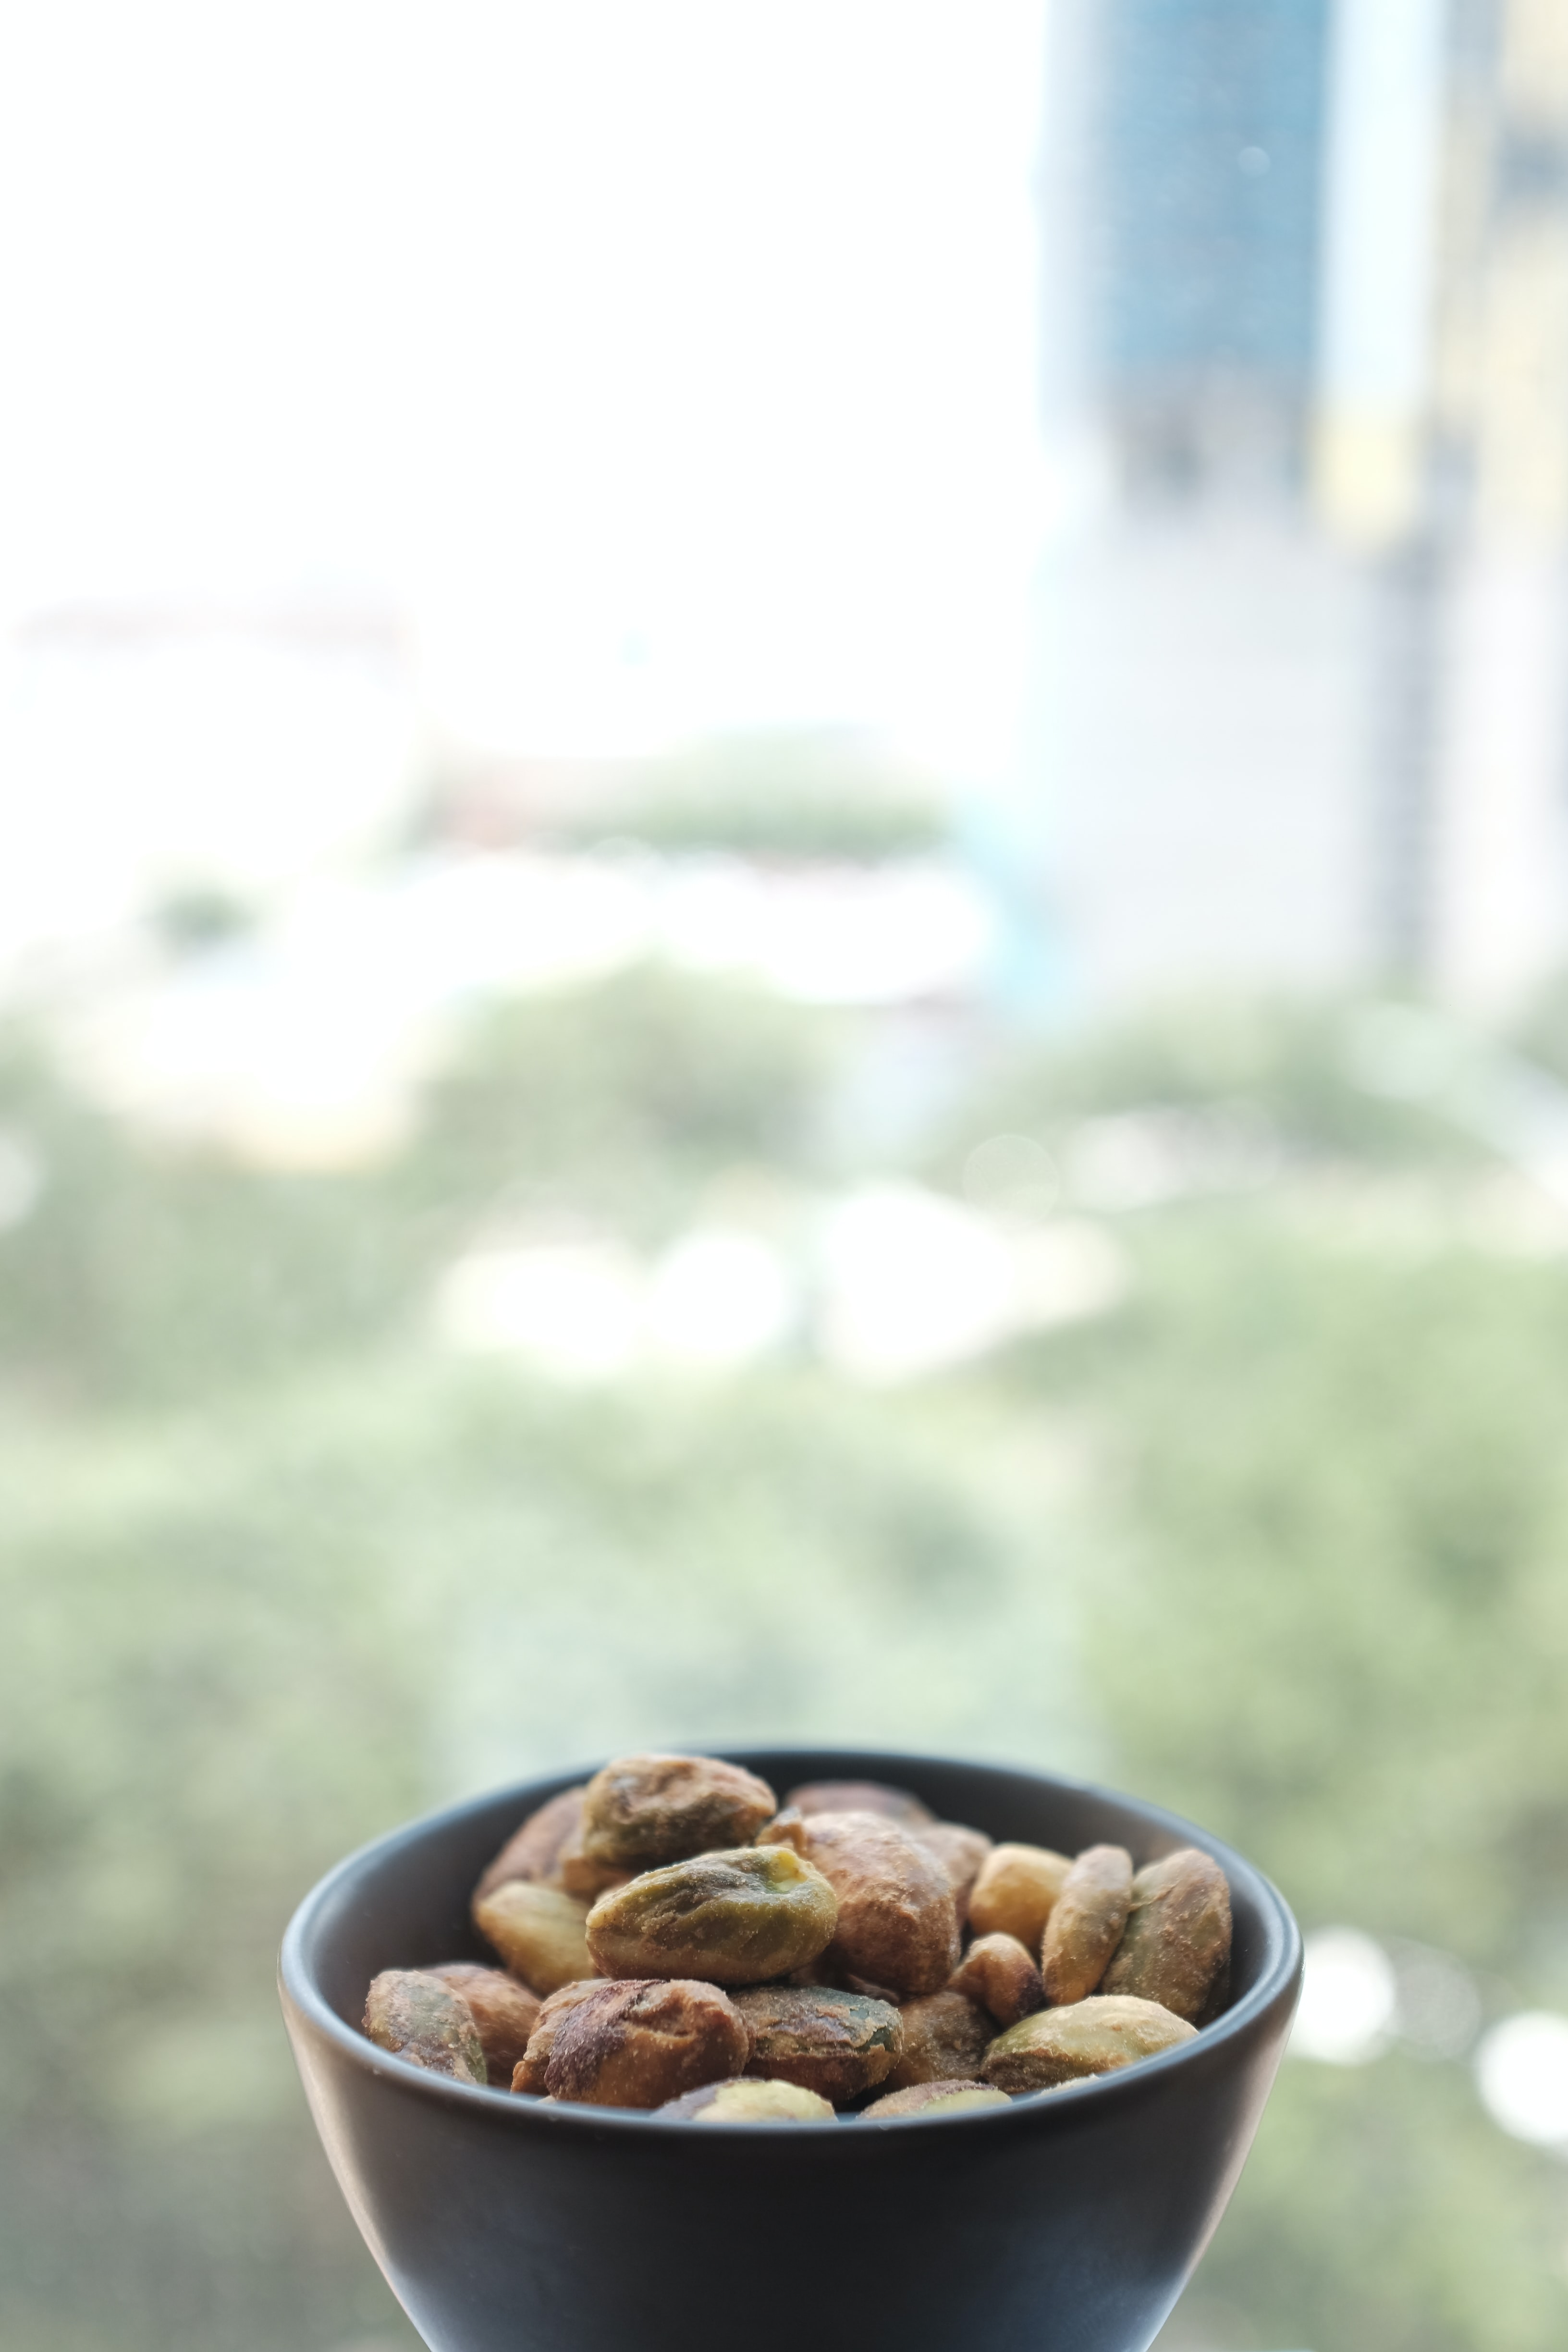 Small bowl of nuts and pistachios for snack